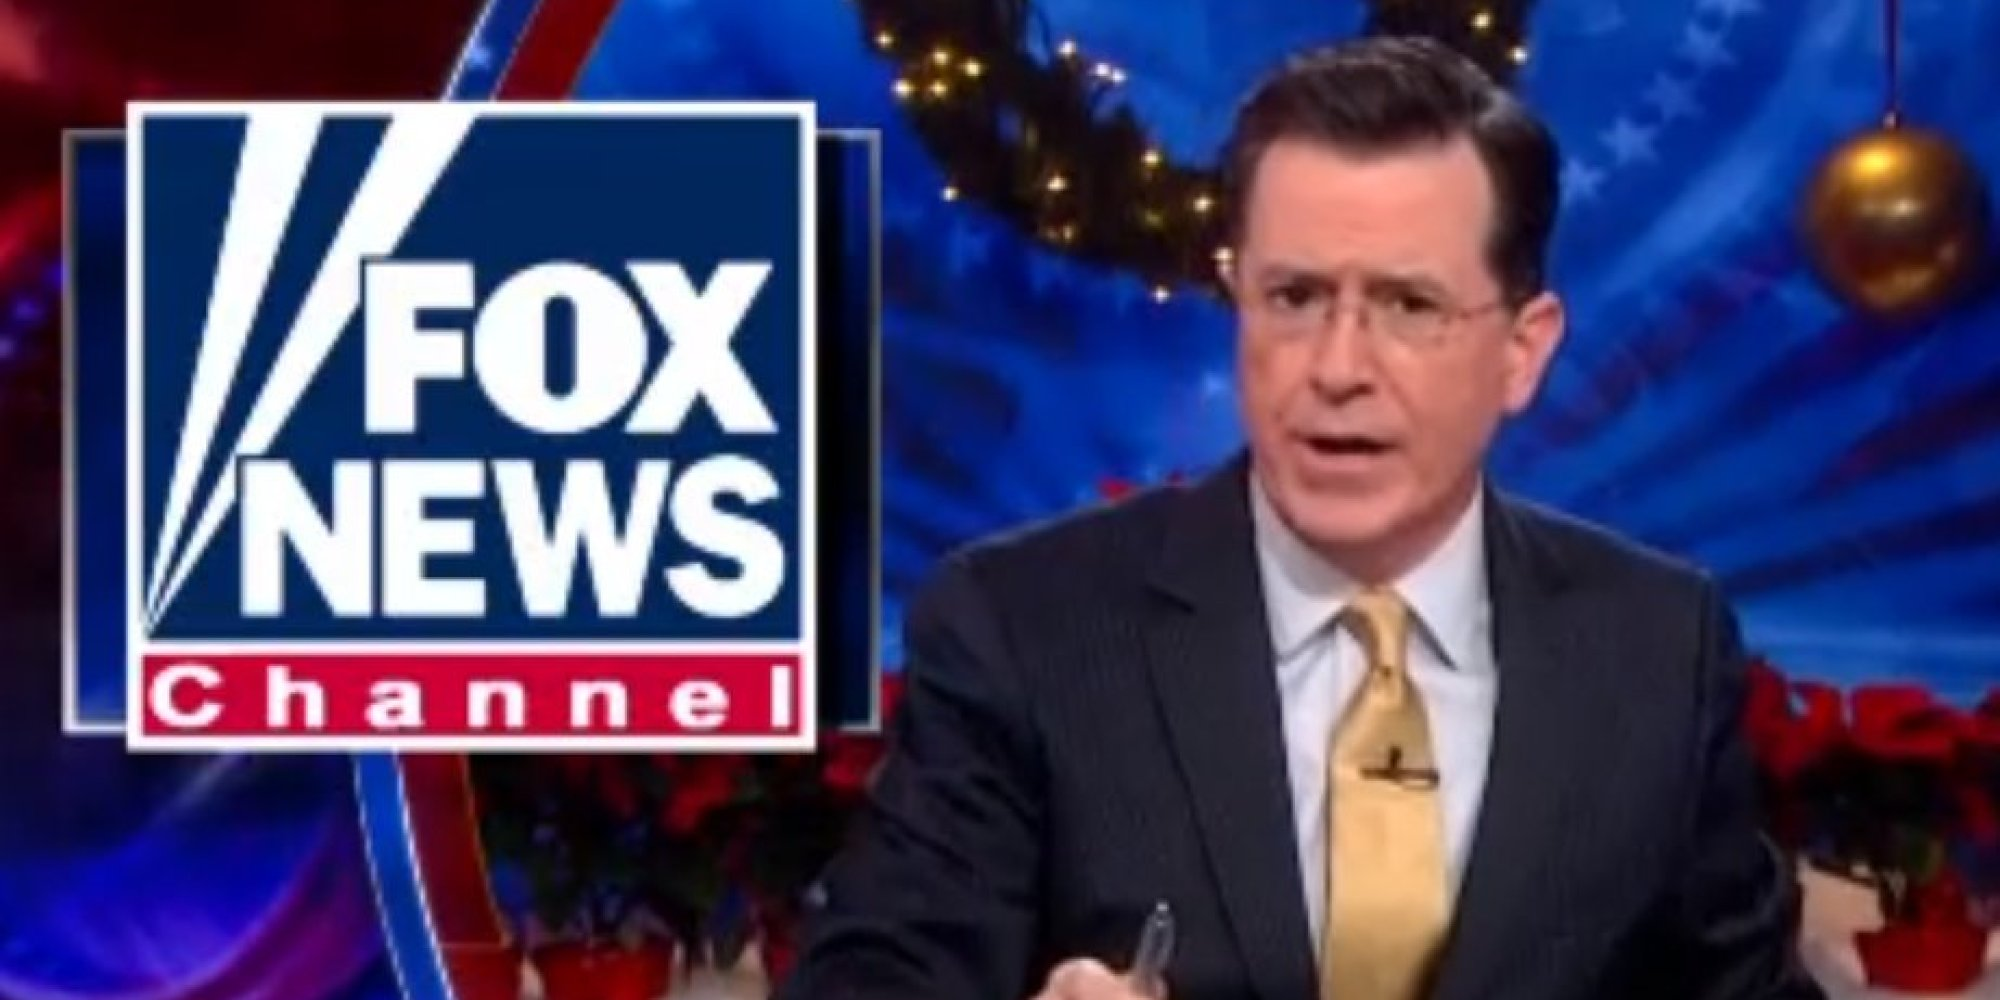 Colbert Mocks Fox News' Keith Ablow Over Ridiculous Theory